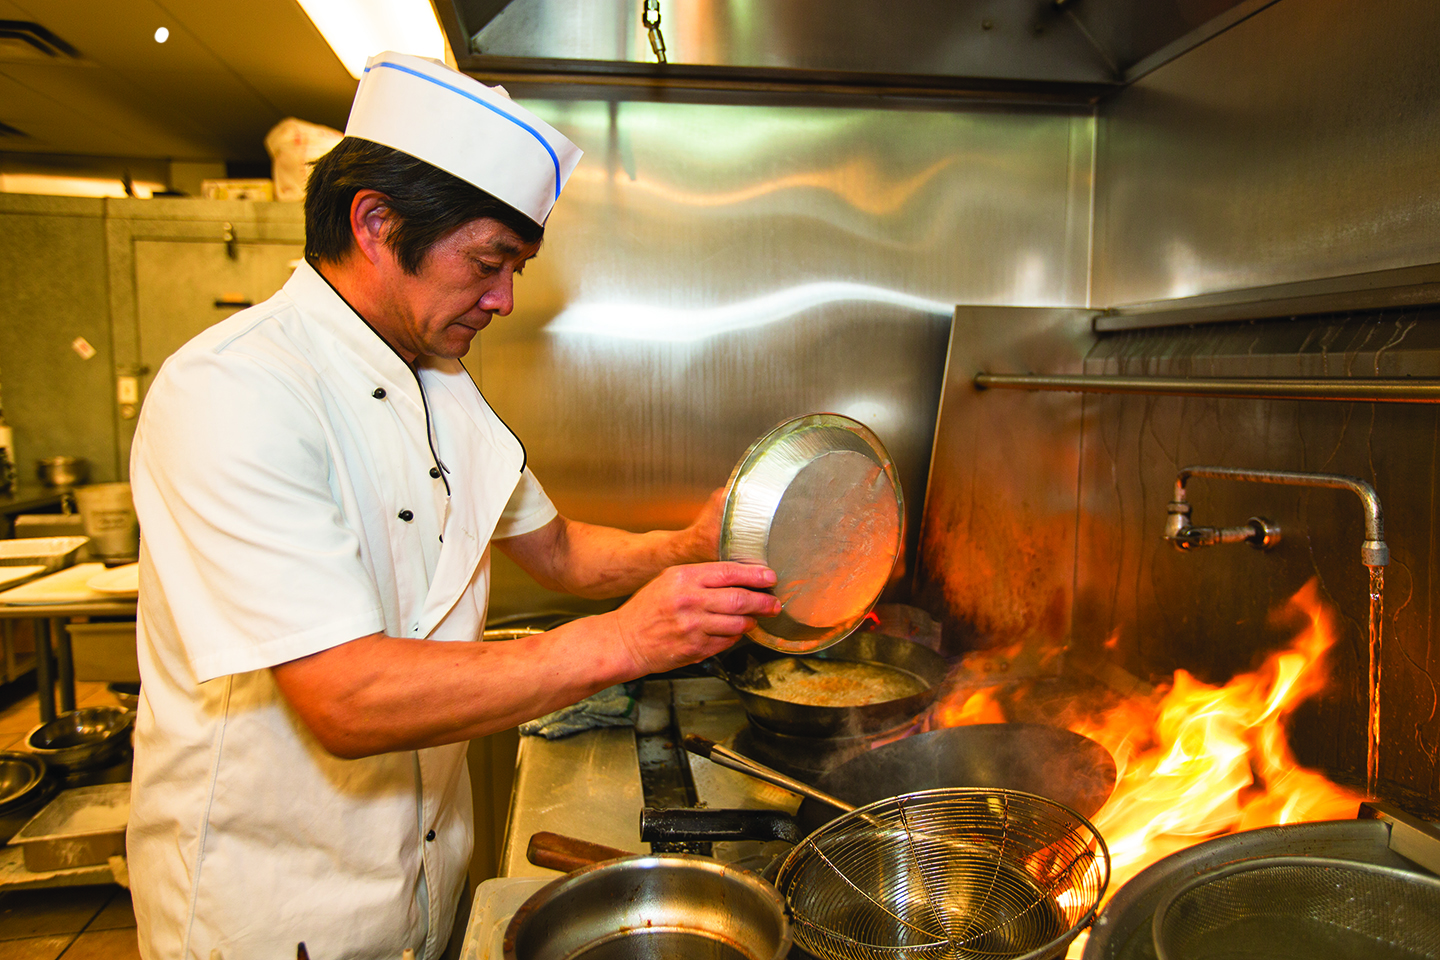 Chef Zeng Qun Liu prepares fried striped bass with tomato sauce at Chef Liu's Authentic Chinese Cuisine in Aurora. The restaurant is featured in Visit Aurora's inaugural Aurora Eats & Drinks poll. (Marla R. Keown/Aurora Sentinel)